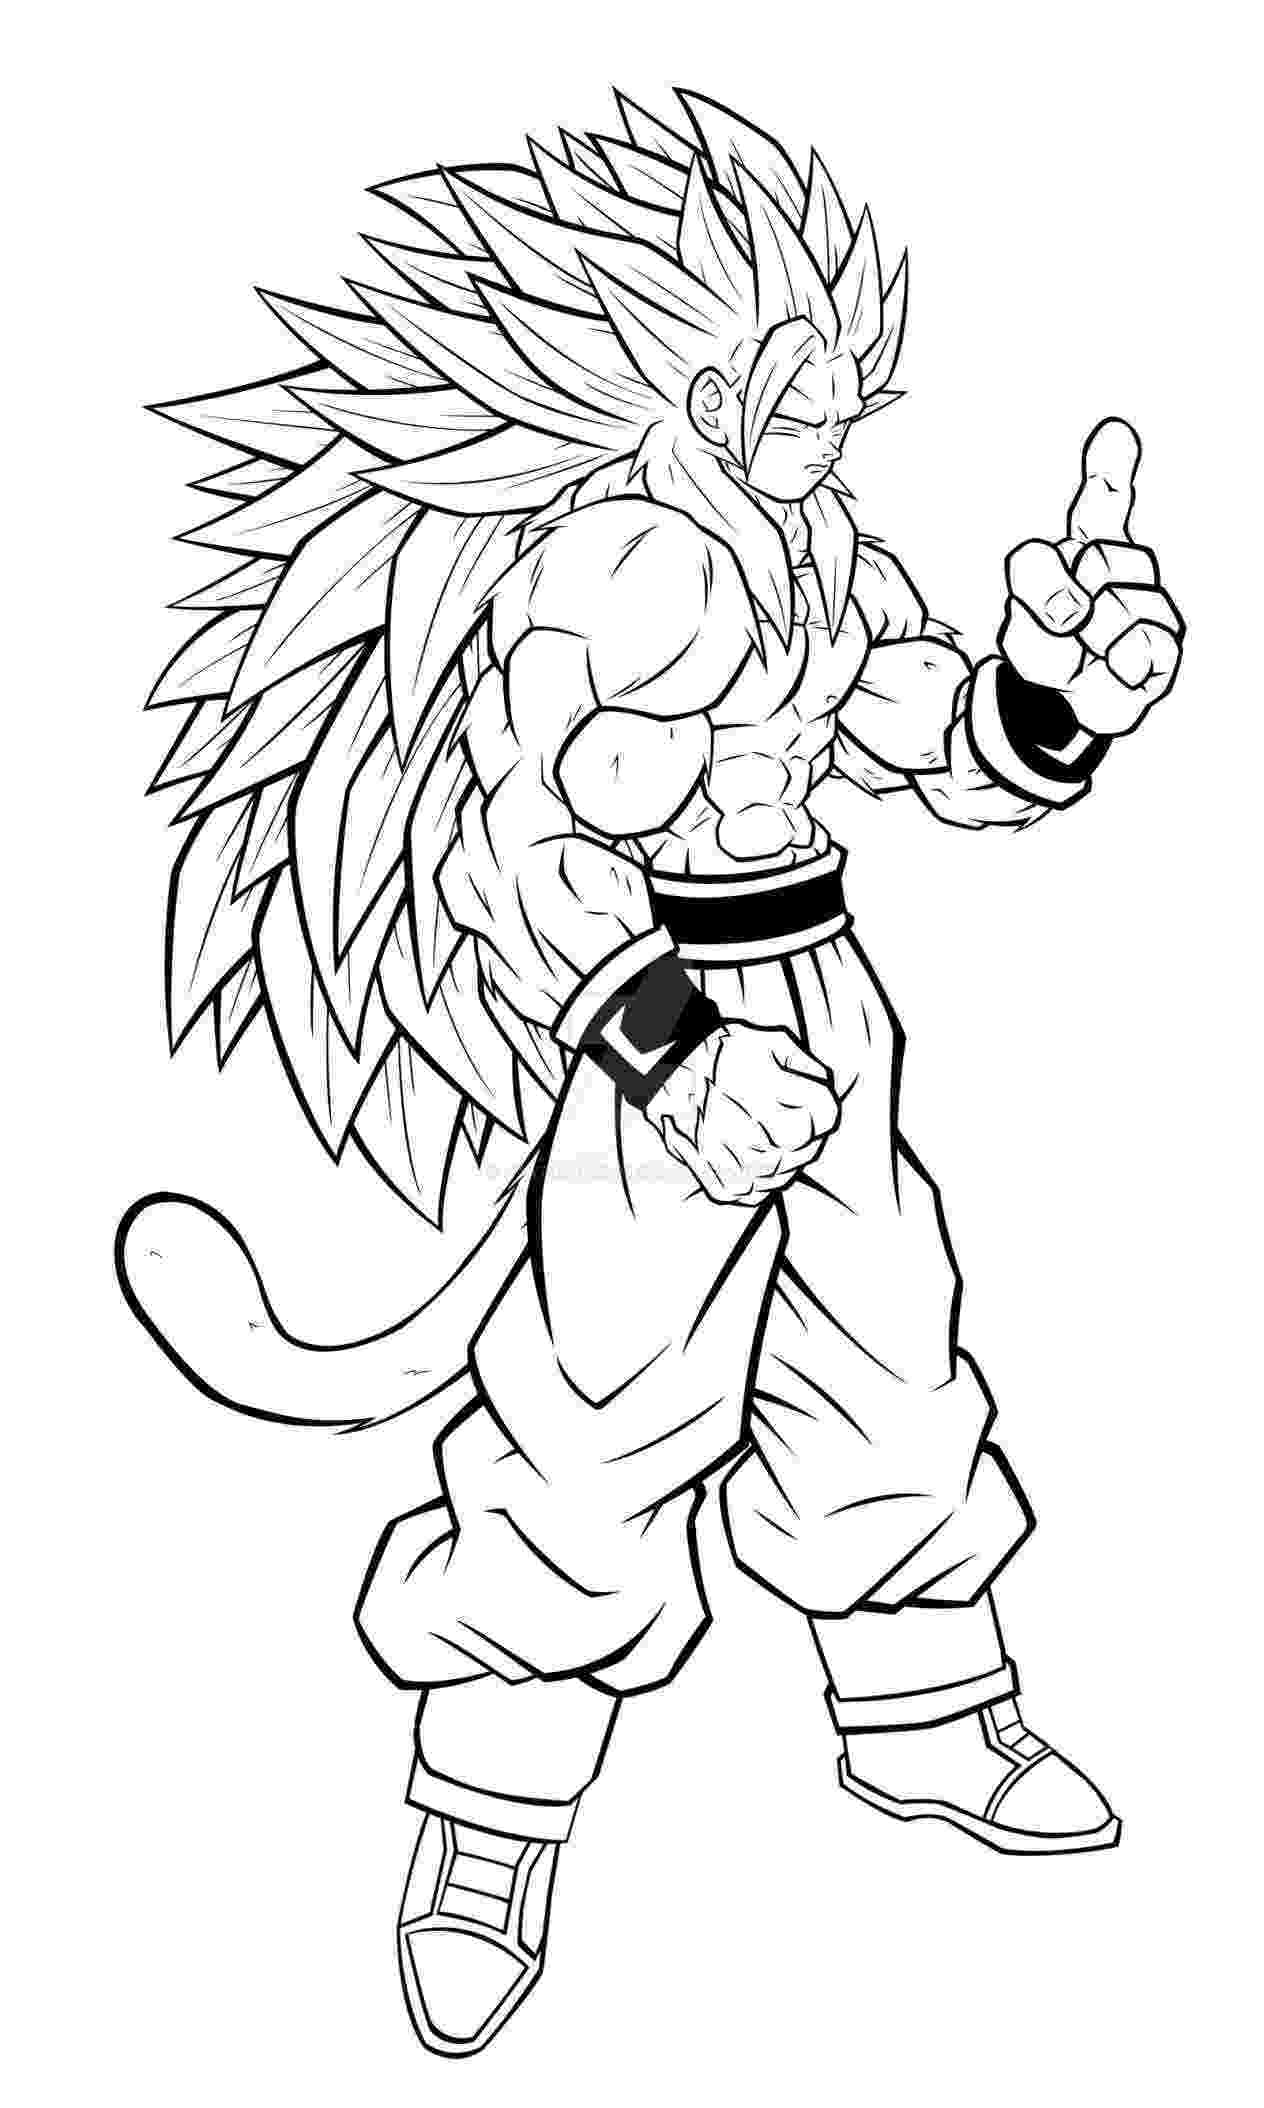 dragon ball z color 39 dragon ball z free coloring pages dragonball z ball z dragon color